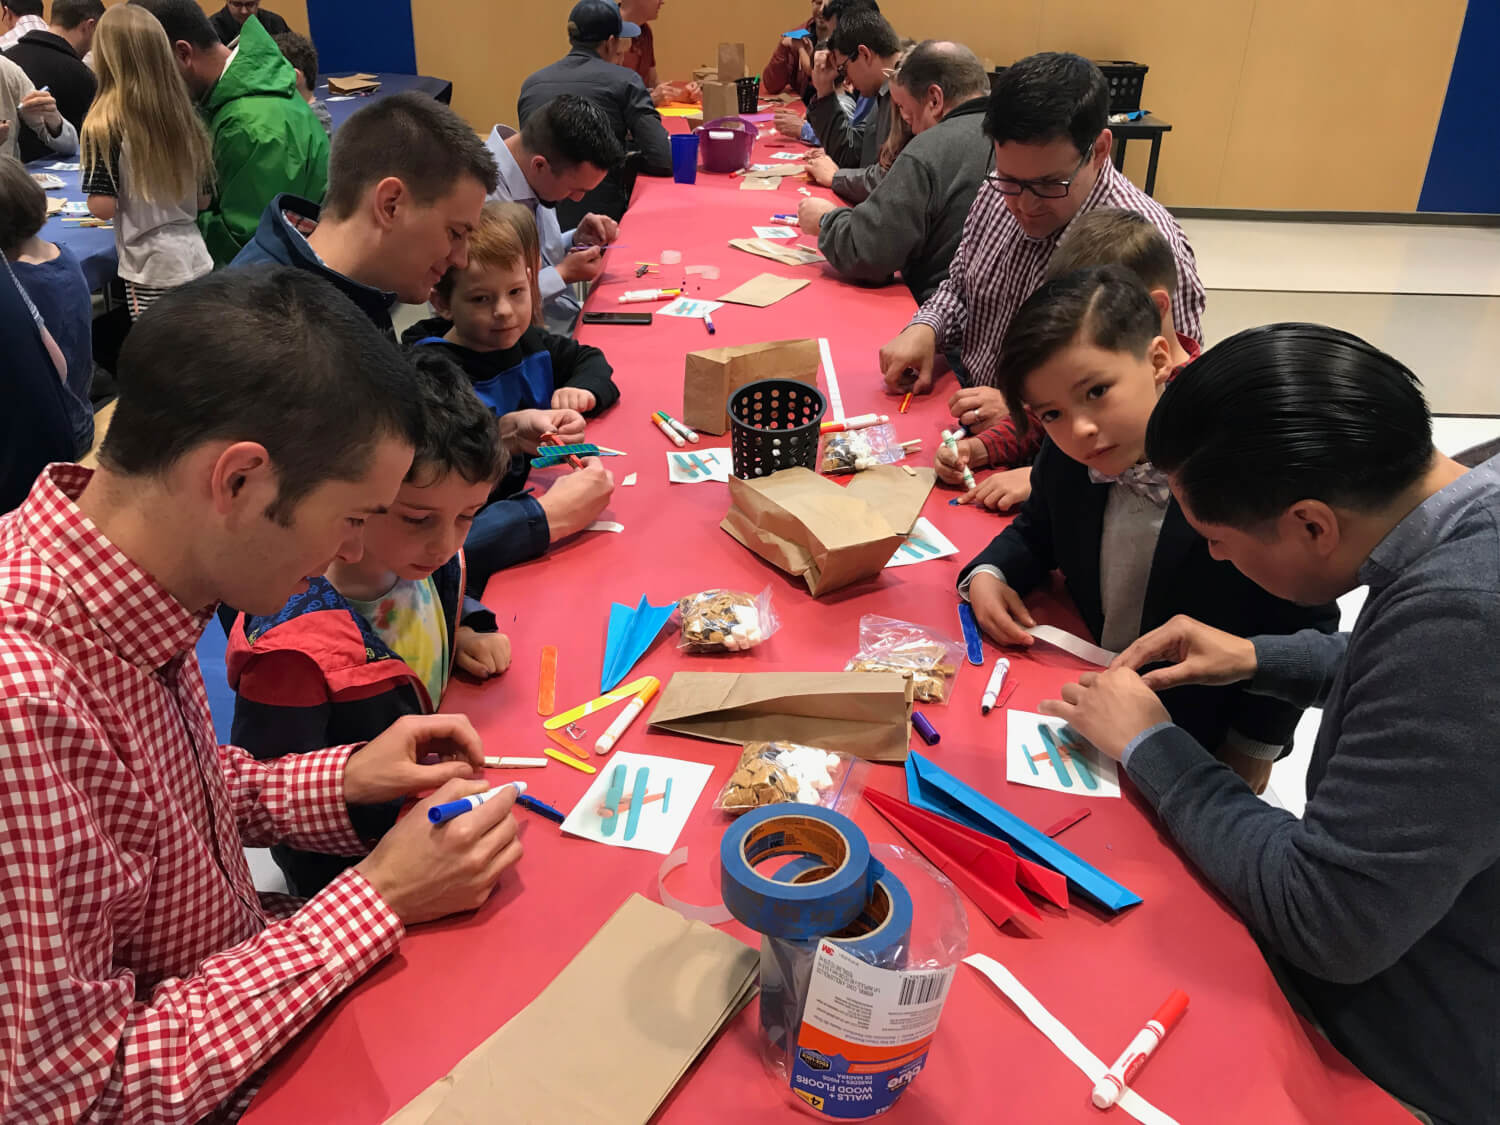 dads and students work on planes